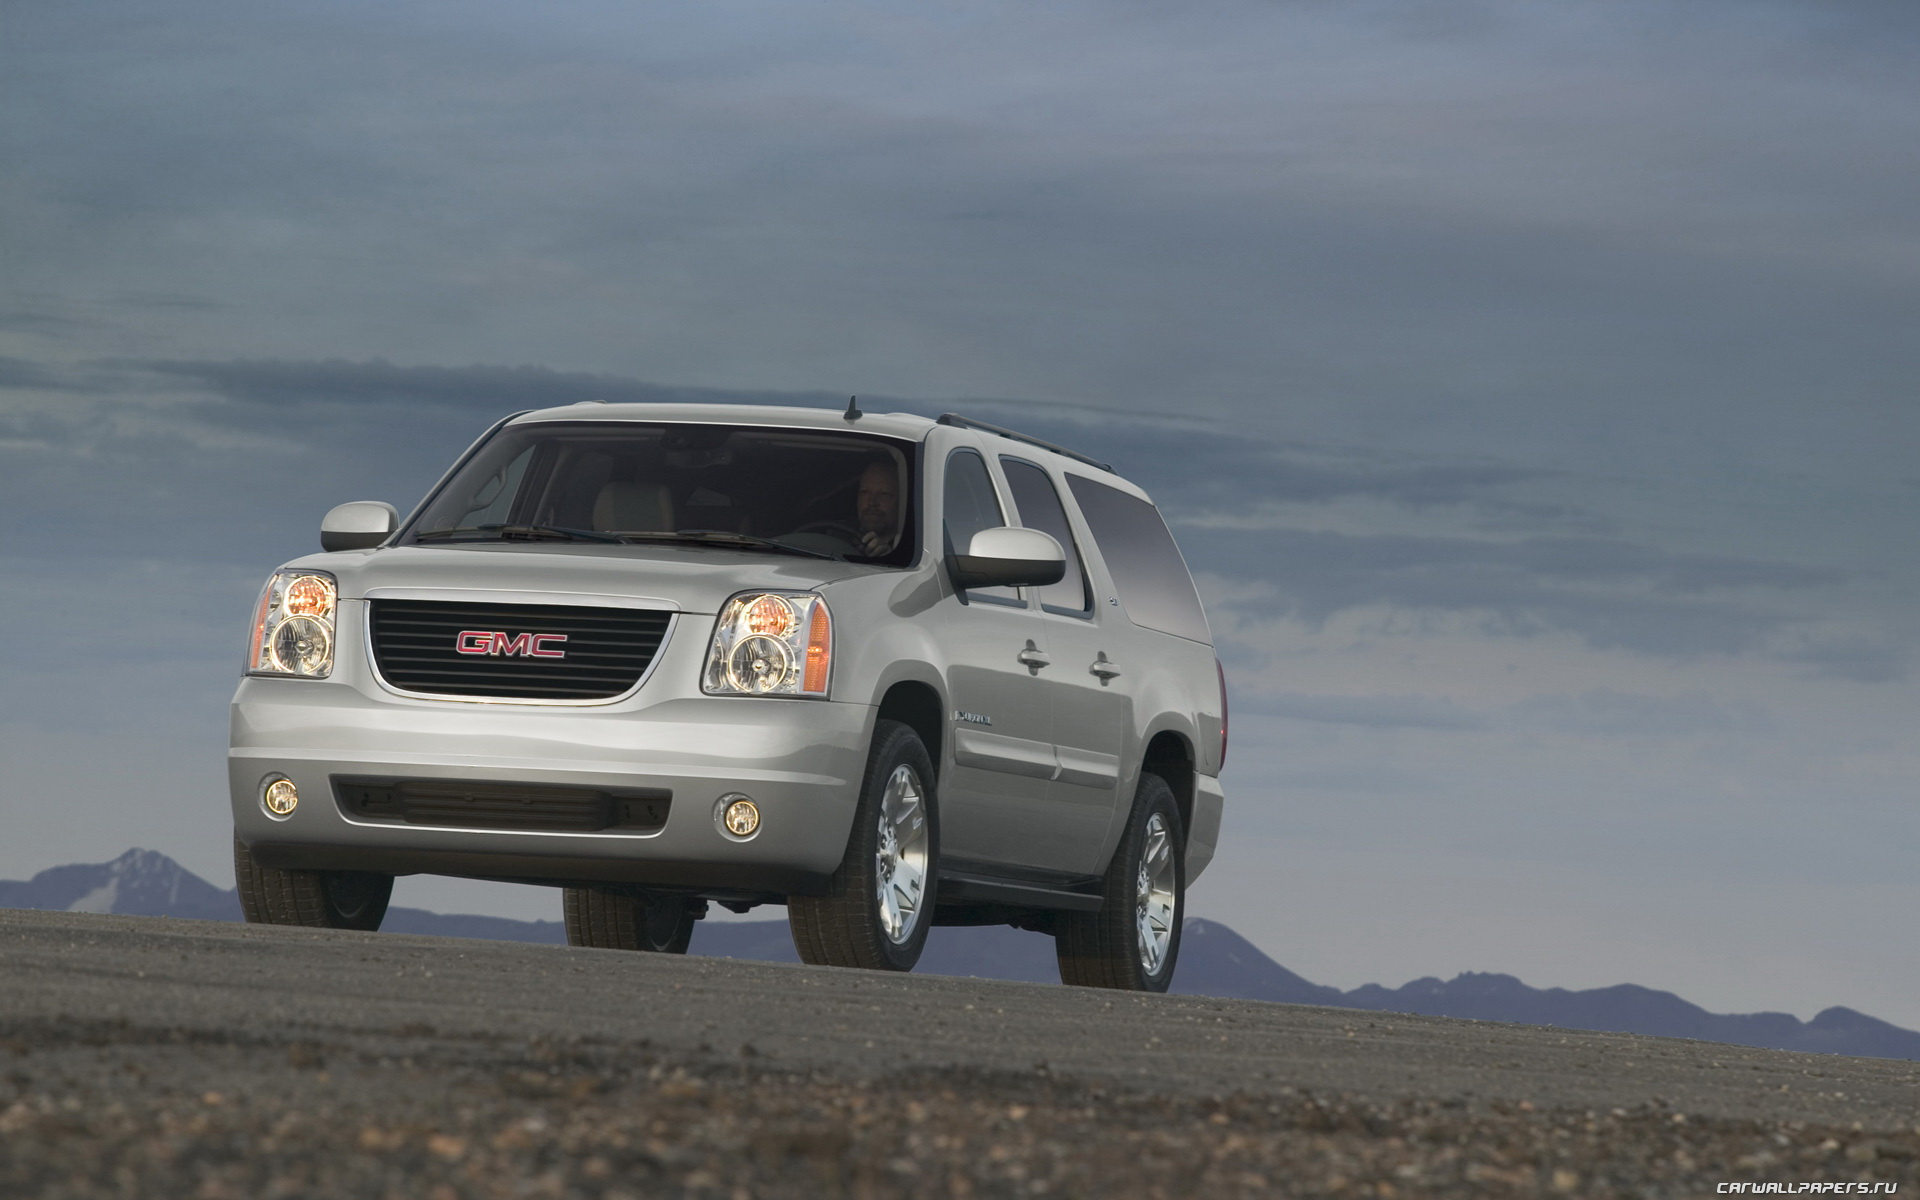 2007 GMC Yukon photo - 1